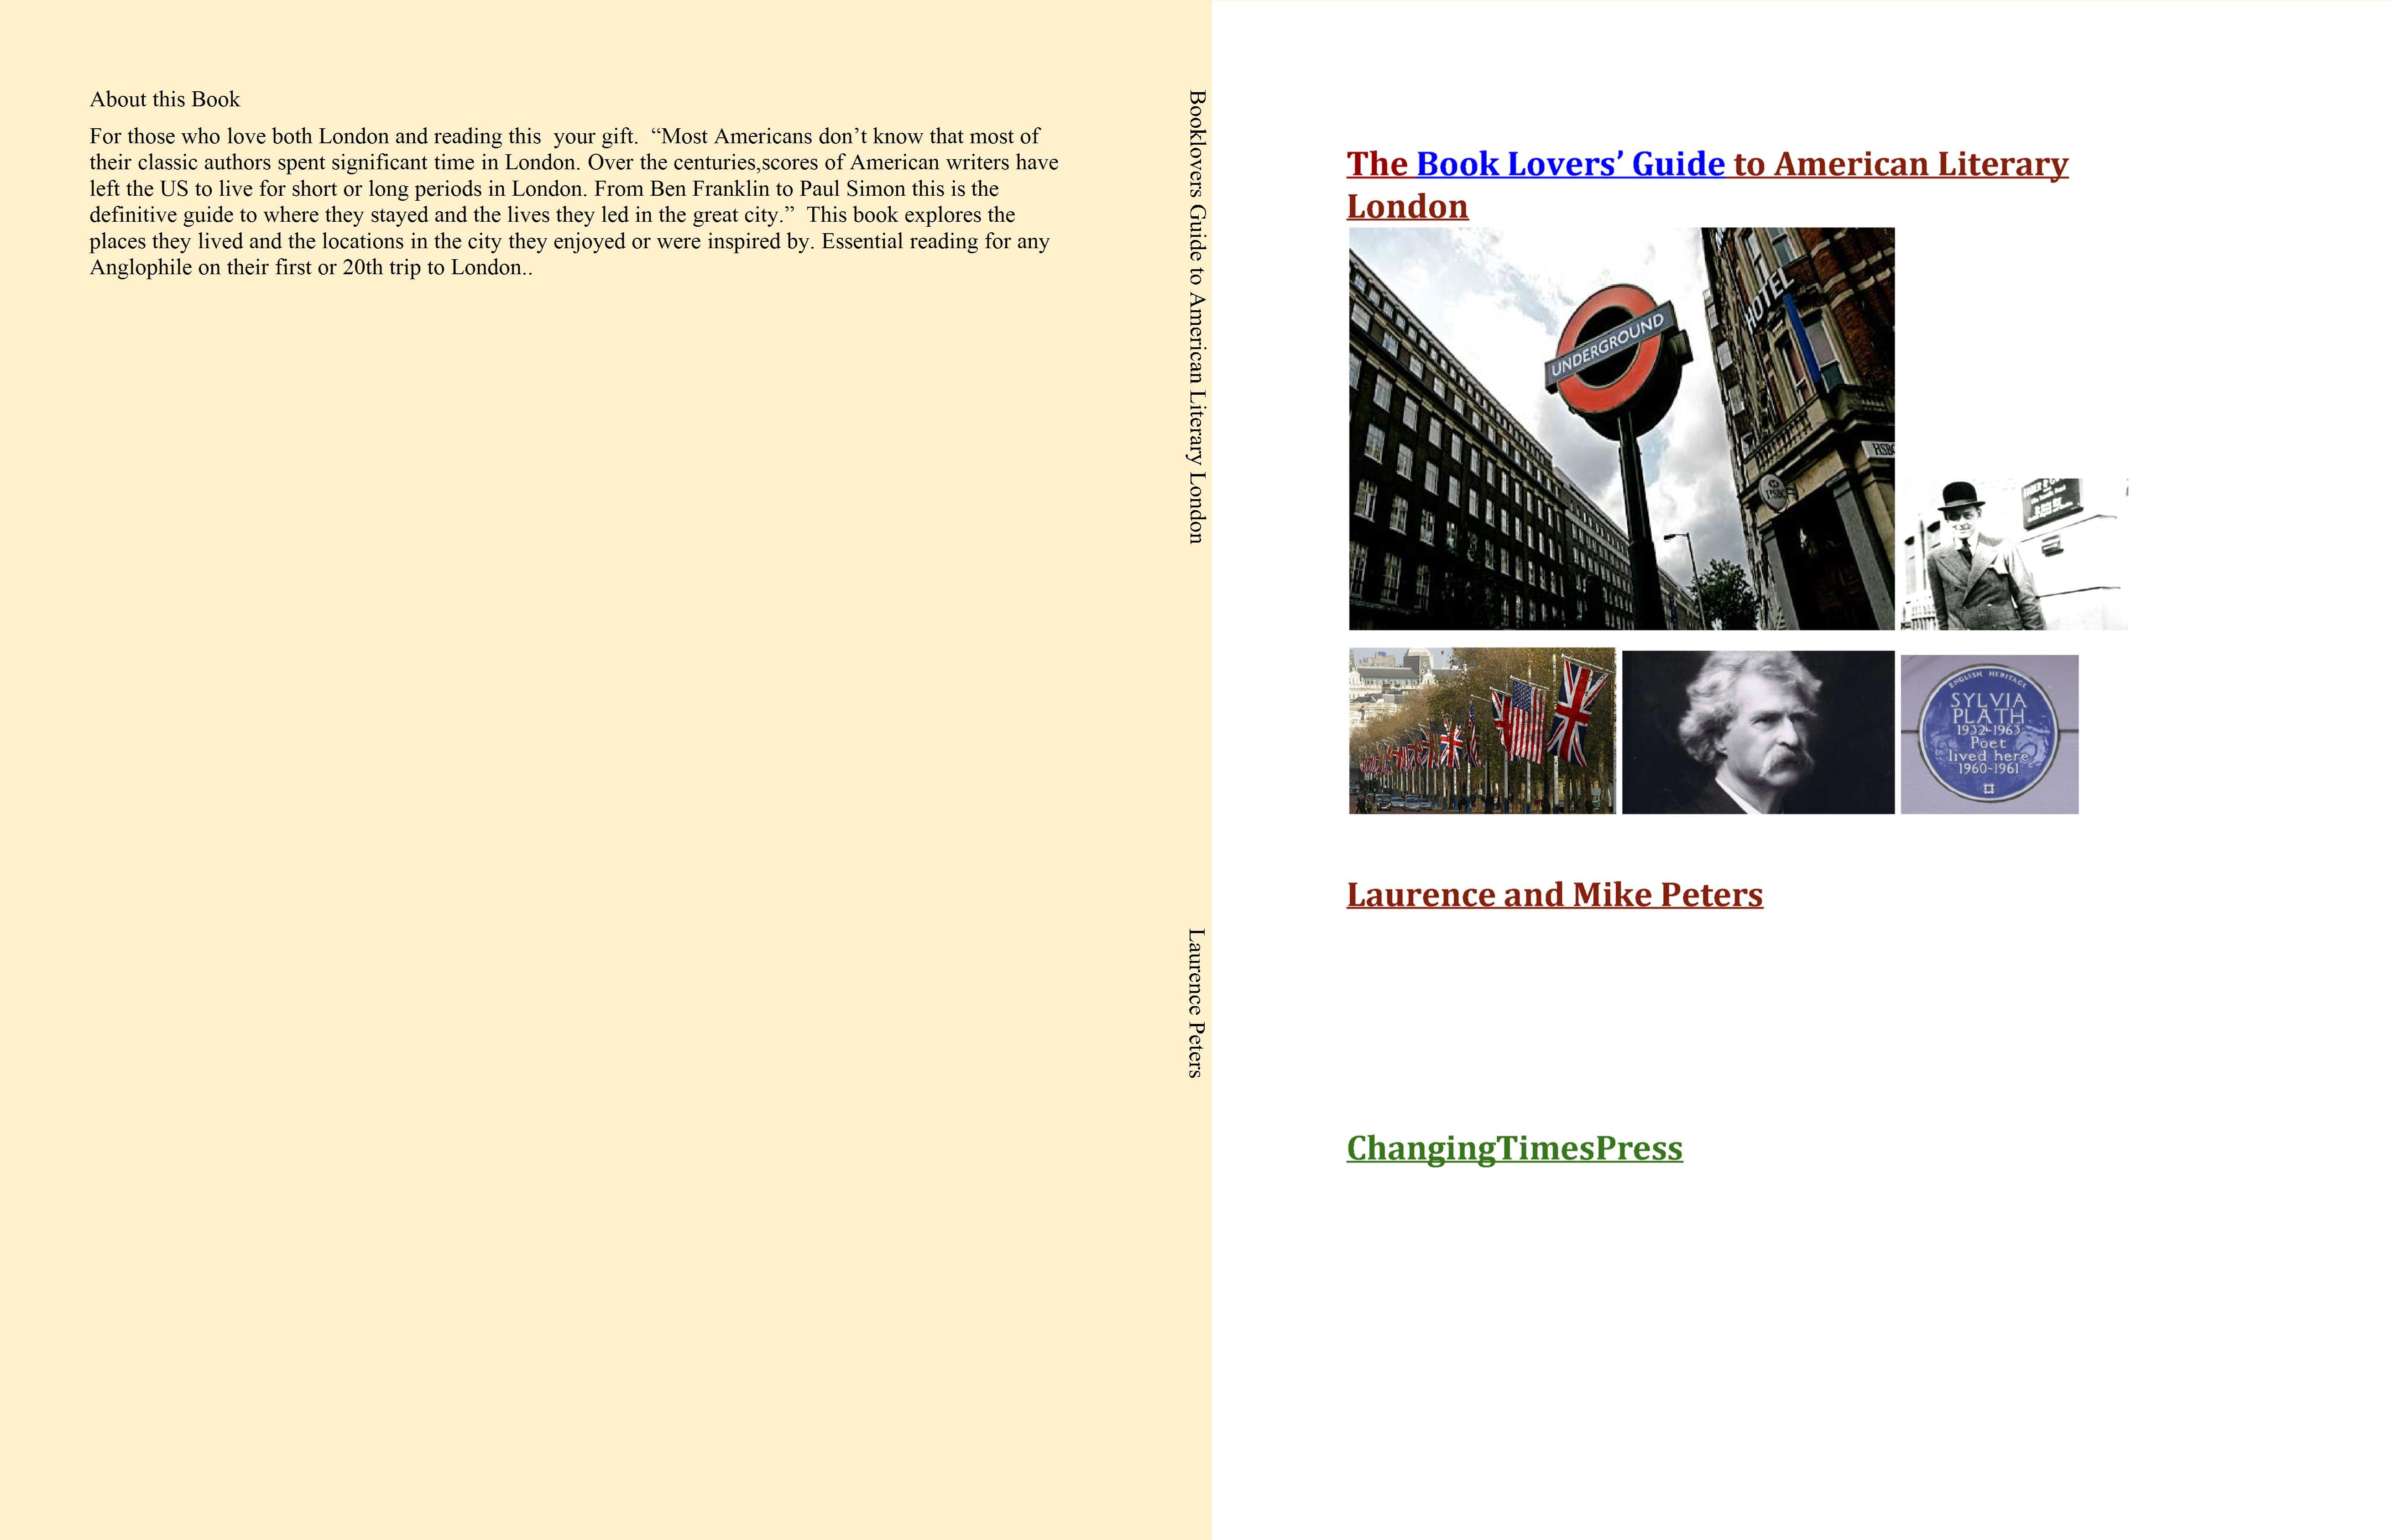 Booklovers Guide to American Literary London cover image